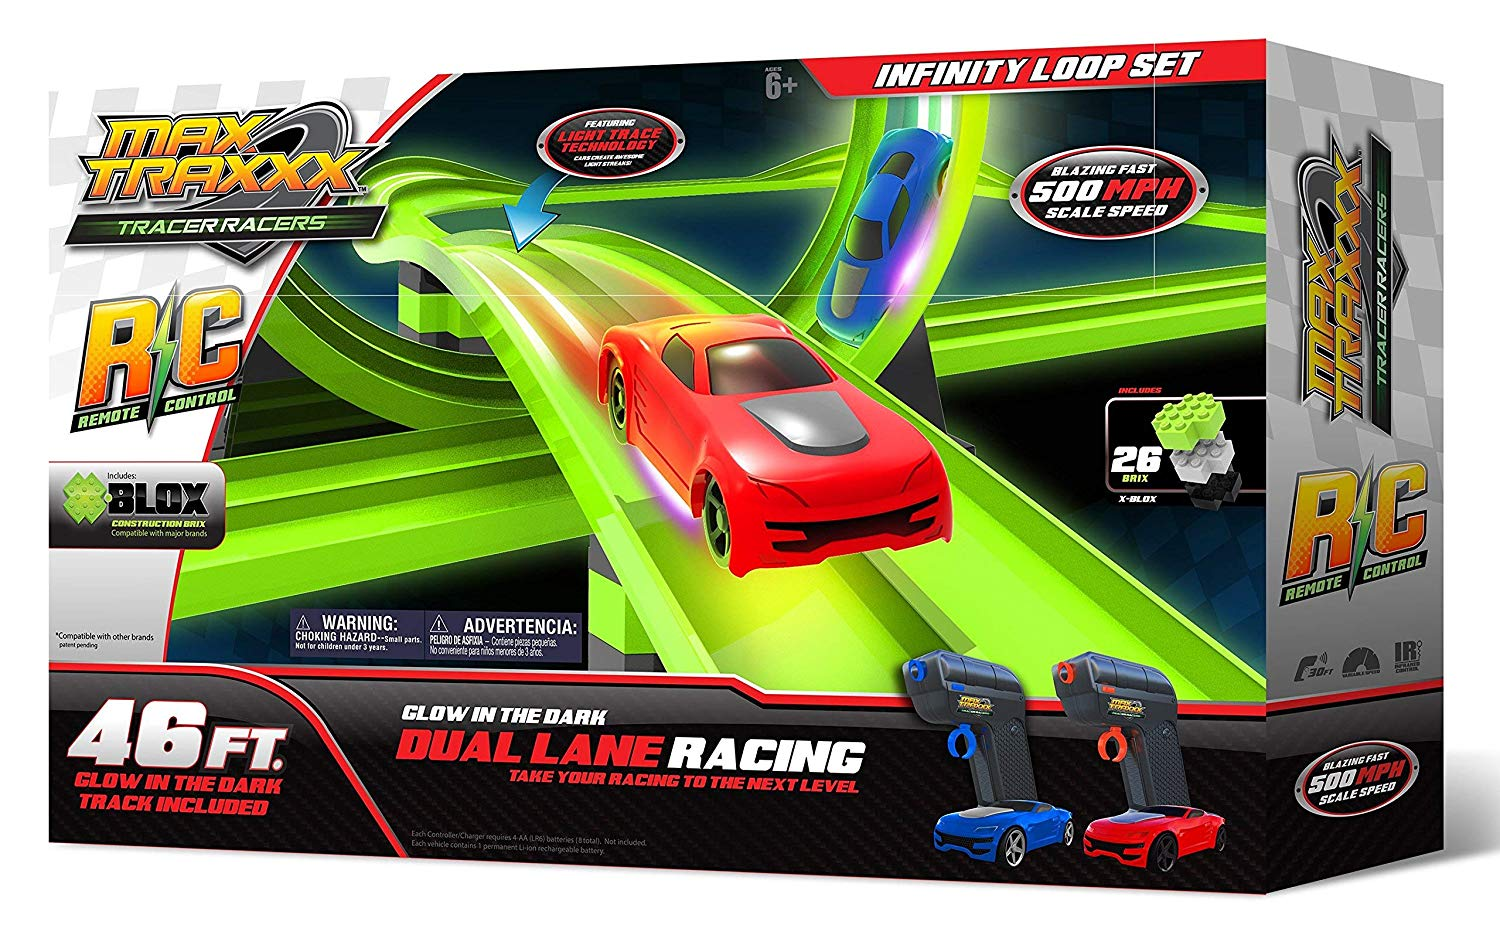 The Tracer Racers Remote Control Infinity Loop Set can be driven at multiple speeds.